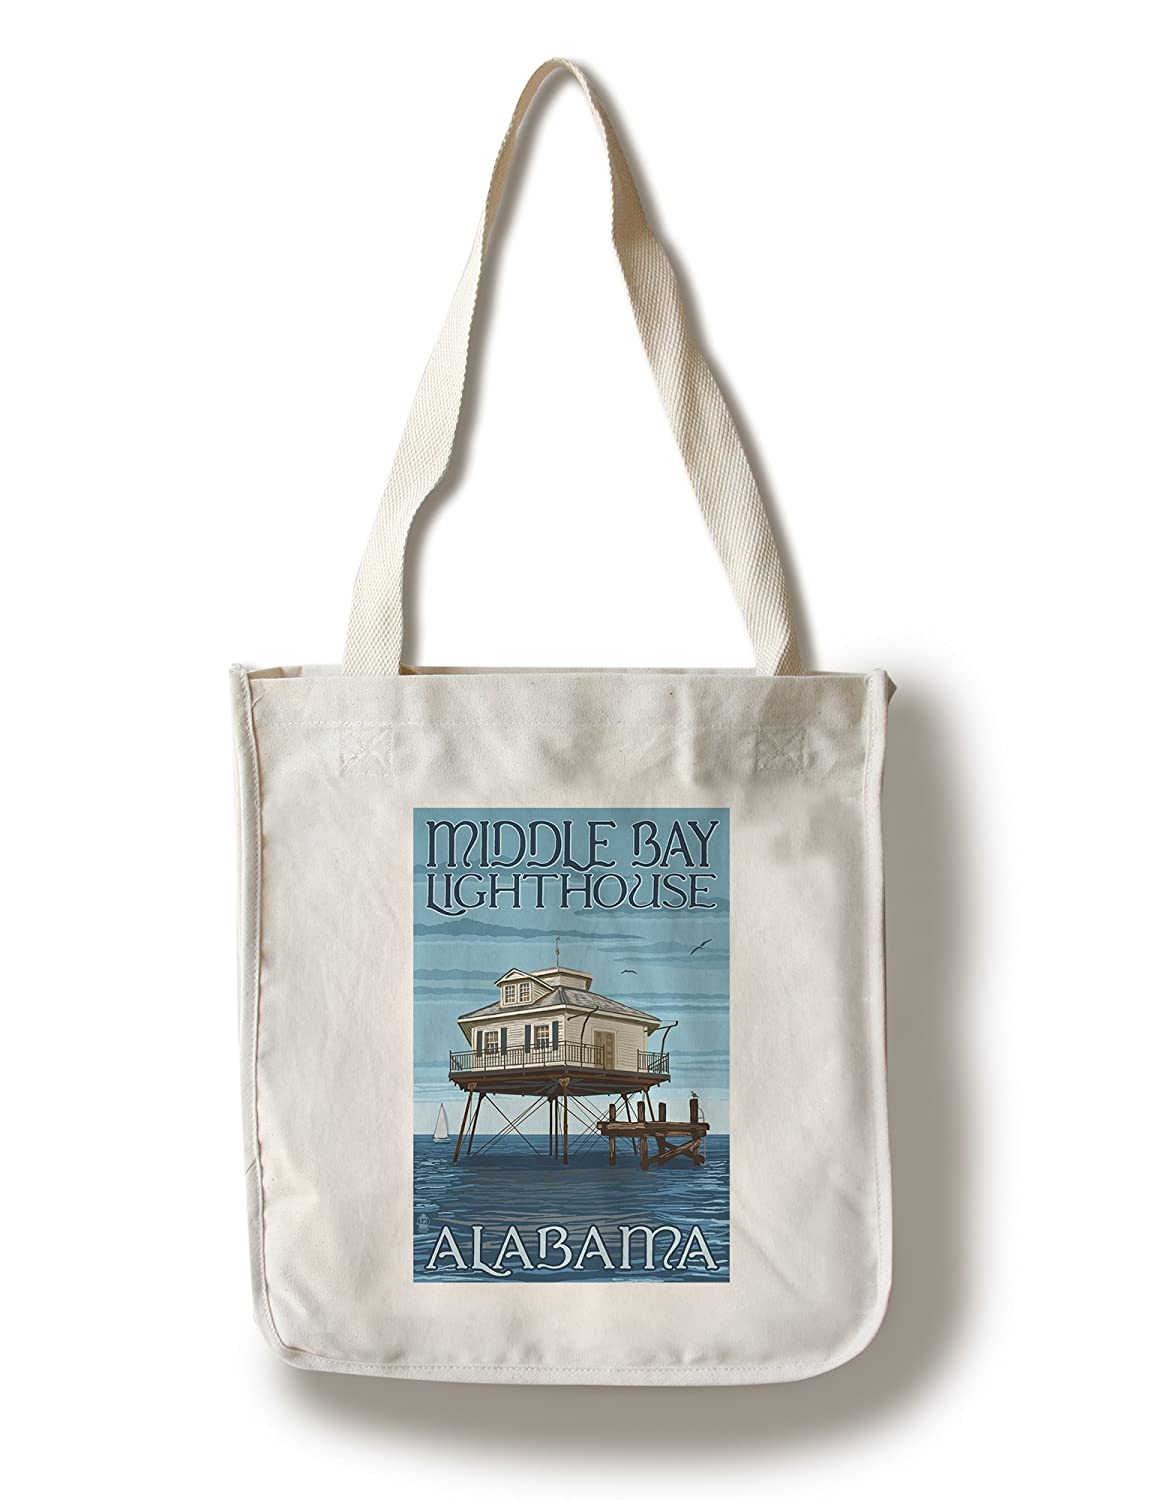 全国宅配無料 中央ベイ灯台 – 14 Alabama 11 x – 14 Matted Art Print Print LANT-36784-11x14M B0184189QS Canvas Tote Bag Canvas Tote Bag, かべがみファクトリー:06457b7d --- mcrisartesanato.com.br